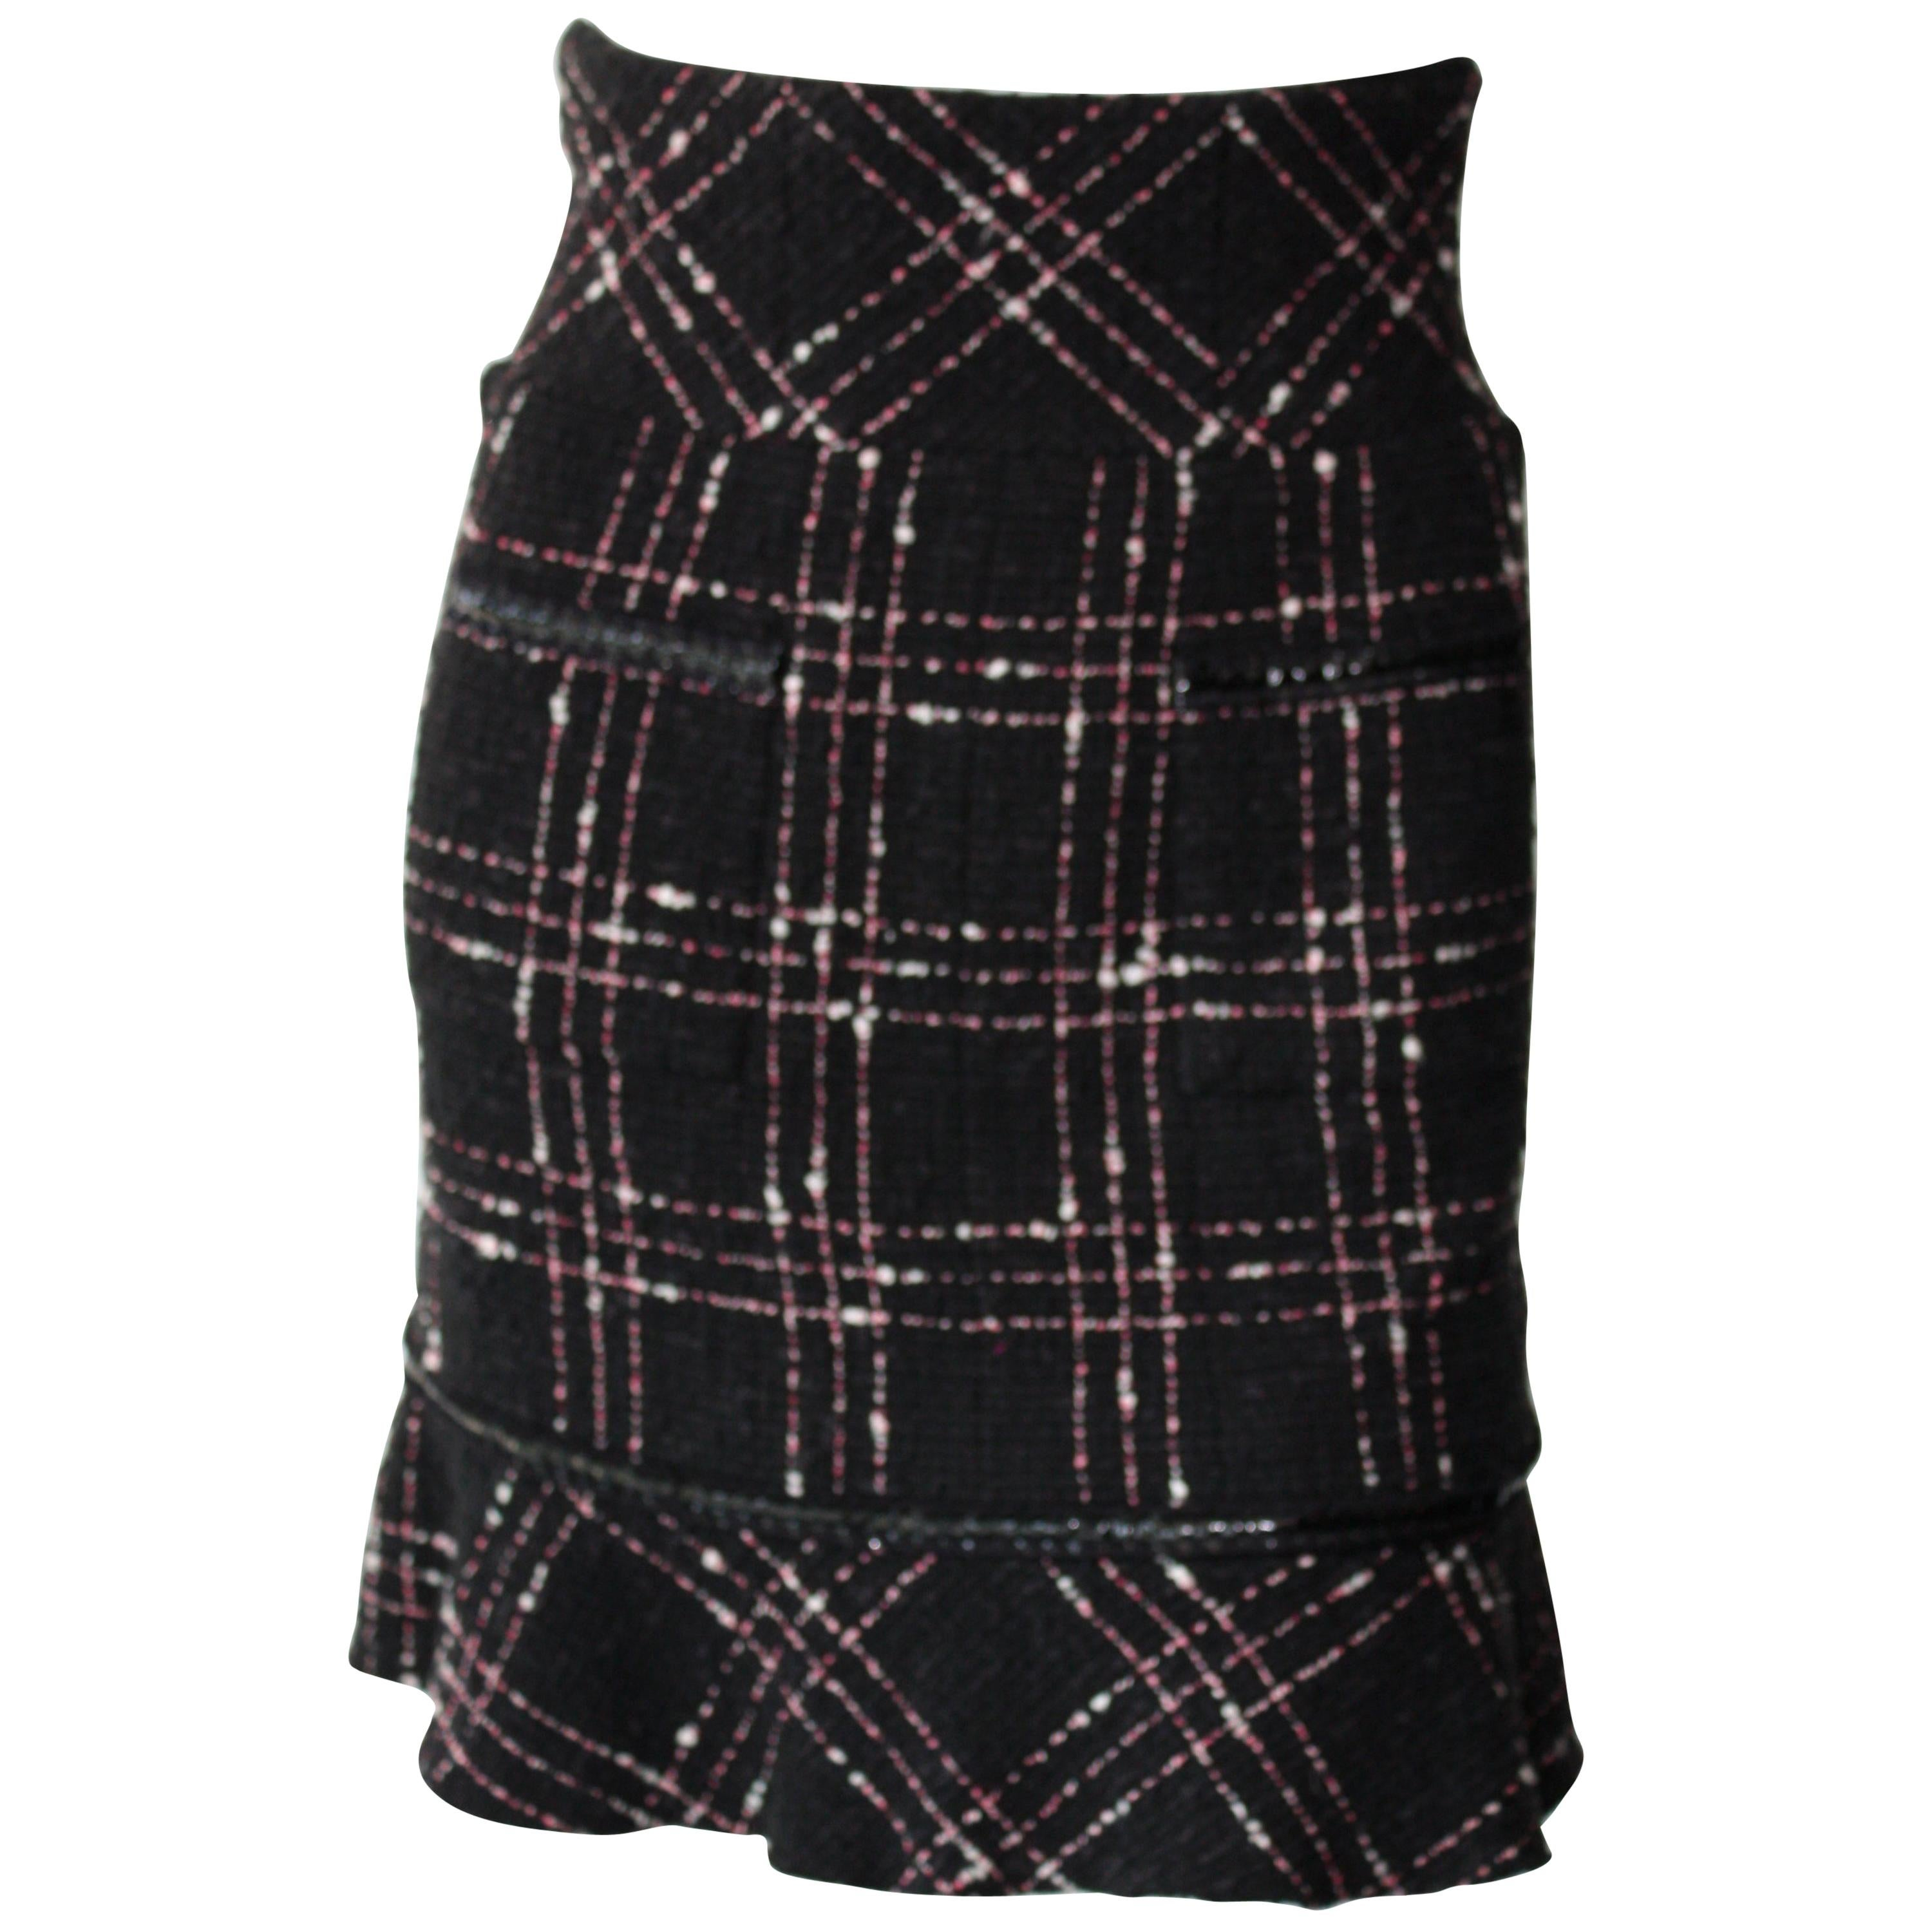 Chanel High Waisted Black, White and Pink  Plaid Skirt